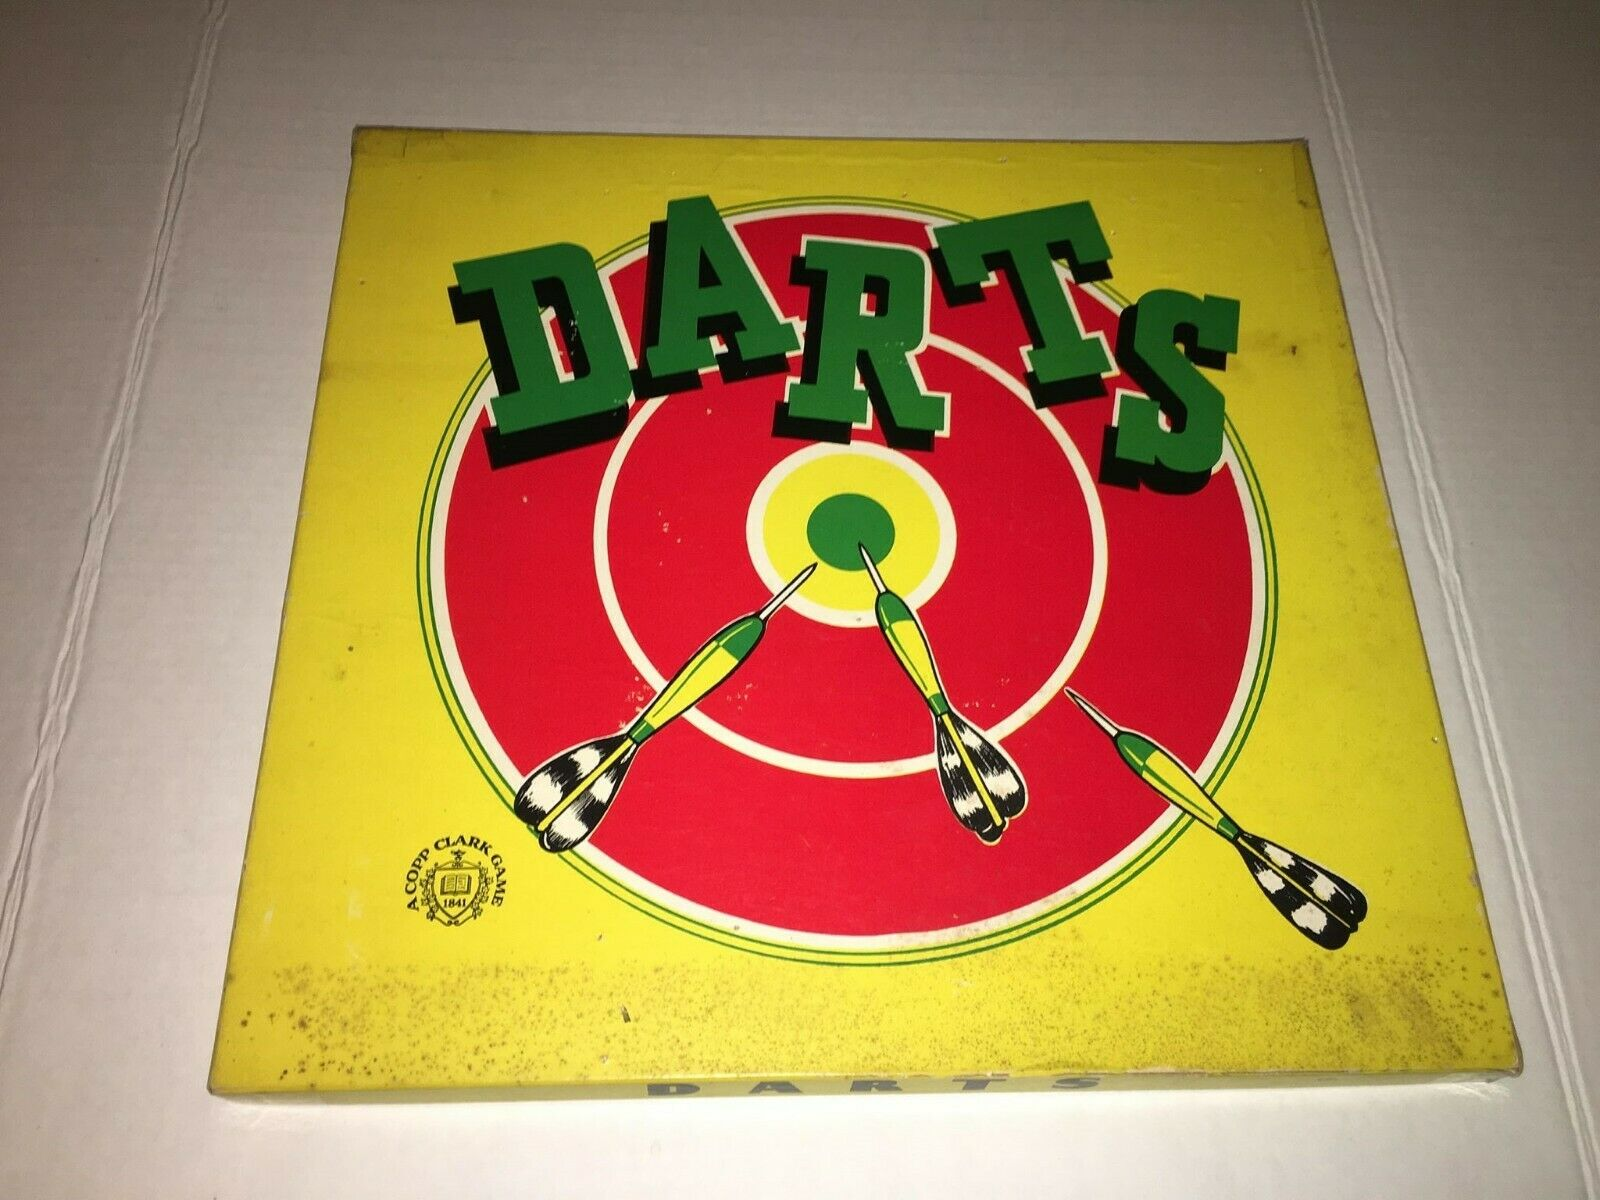 Vintage 1960's DARTS GAME A COPP CLARK GAME IN GREAT CONDITION WITH A RETRO LOOK